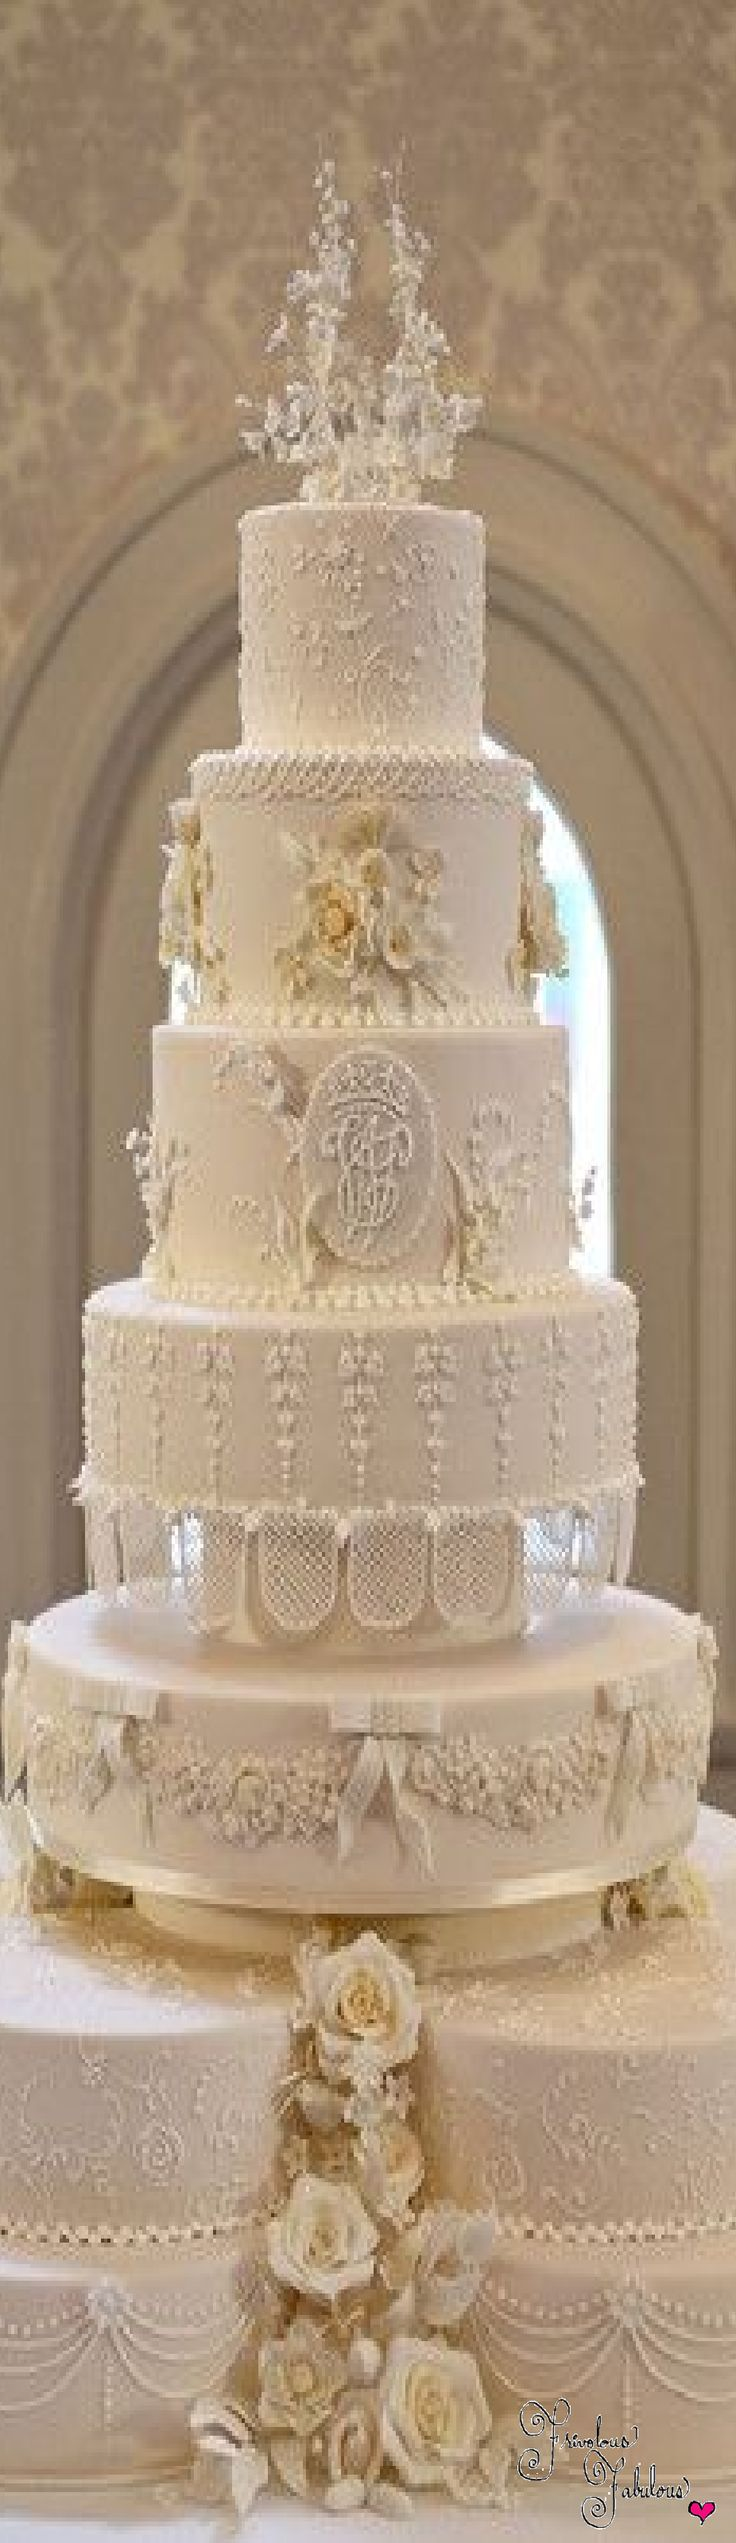 using top tier of wedding cake for christening 157 best cakes tiered traditional wedding cakes 21515